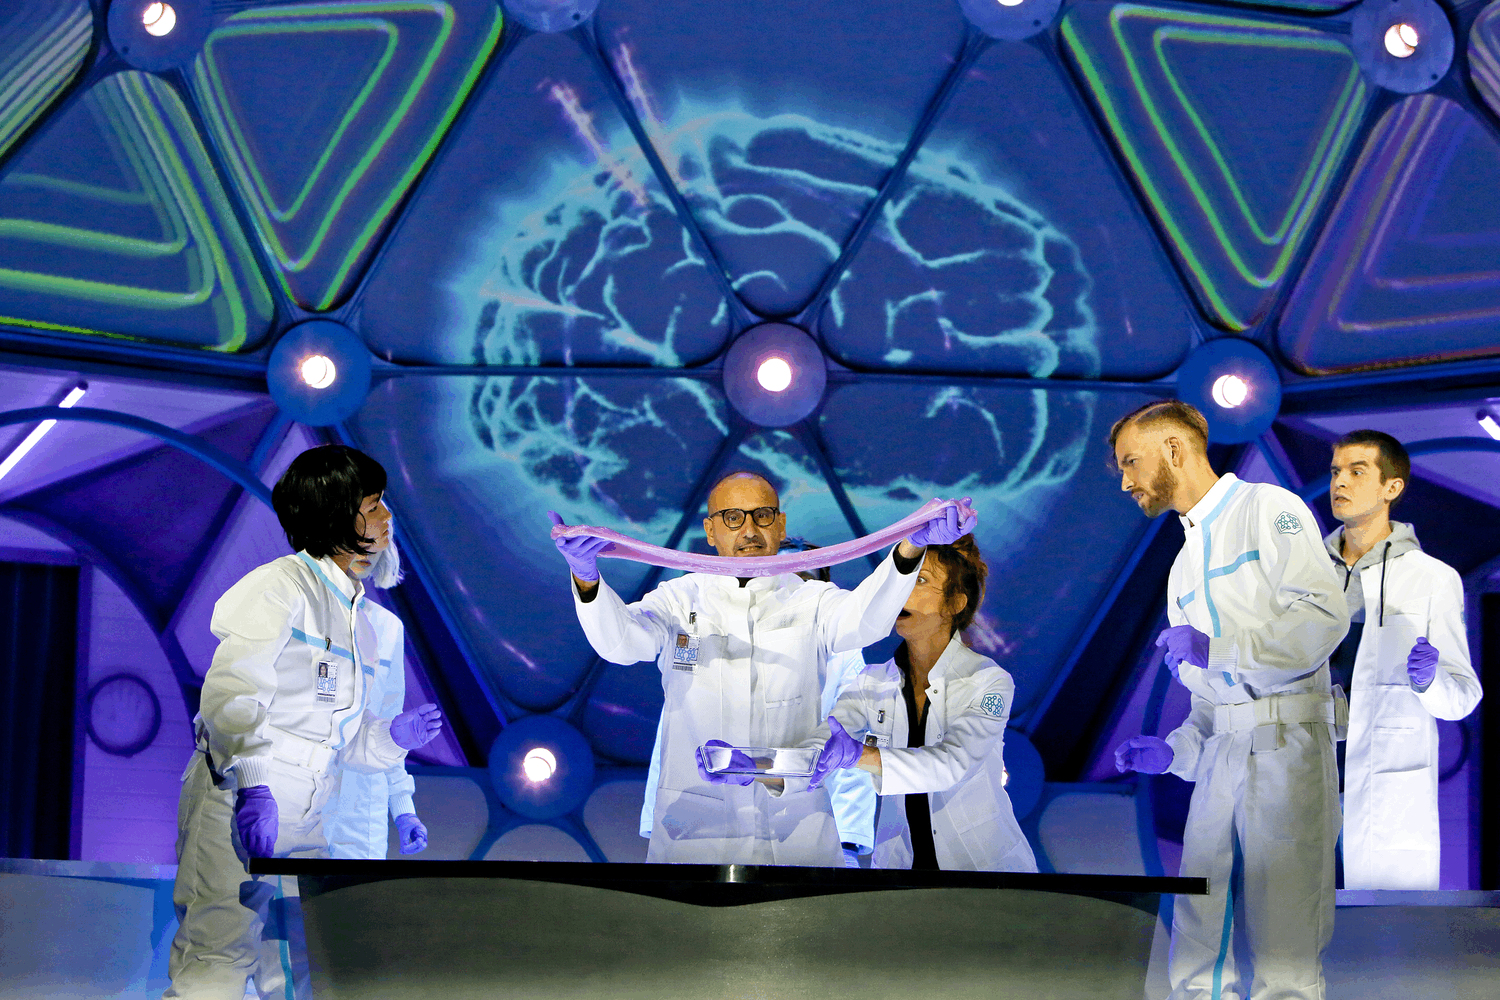 a scientist in a white coat pulls a purple slime between his two hands.  The purple slime is like the inside of a brain